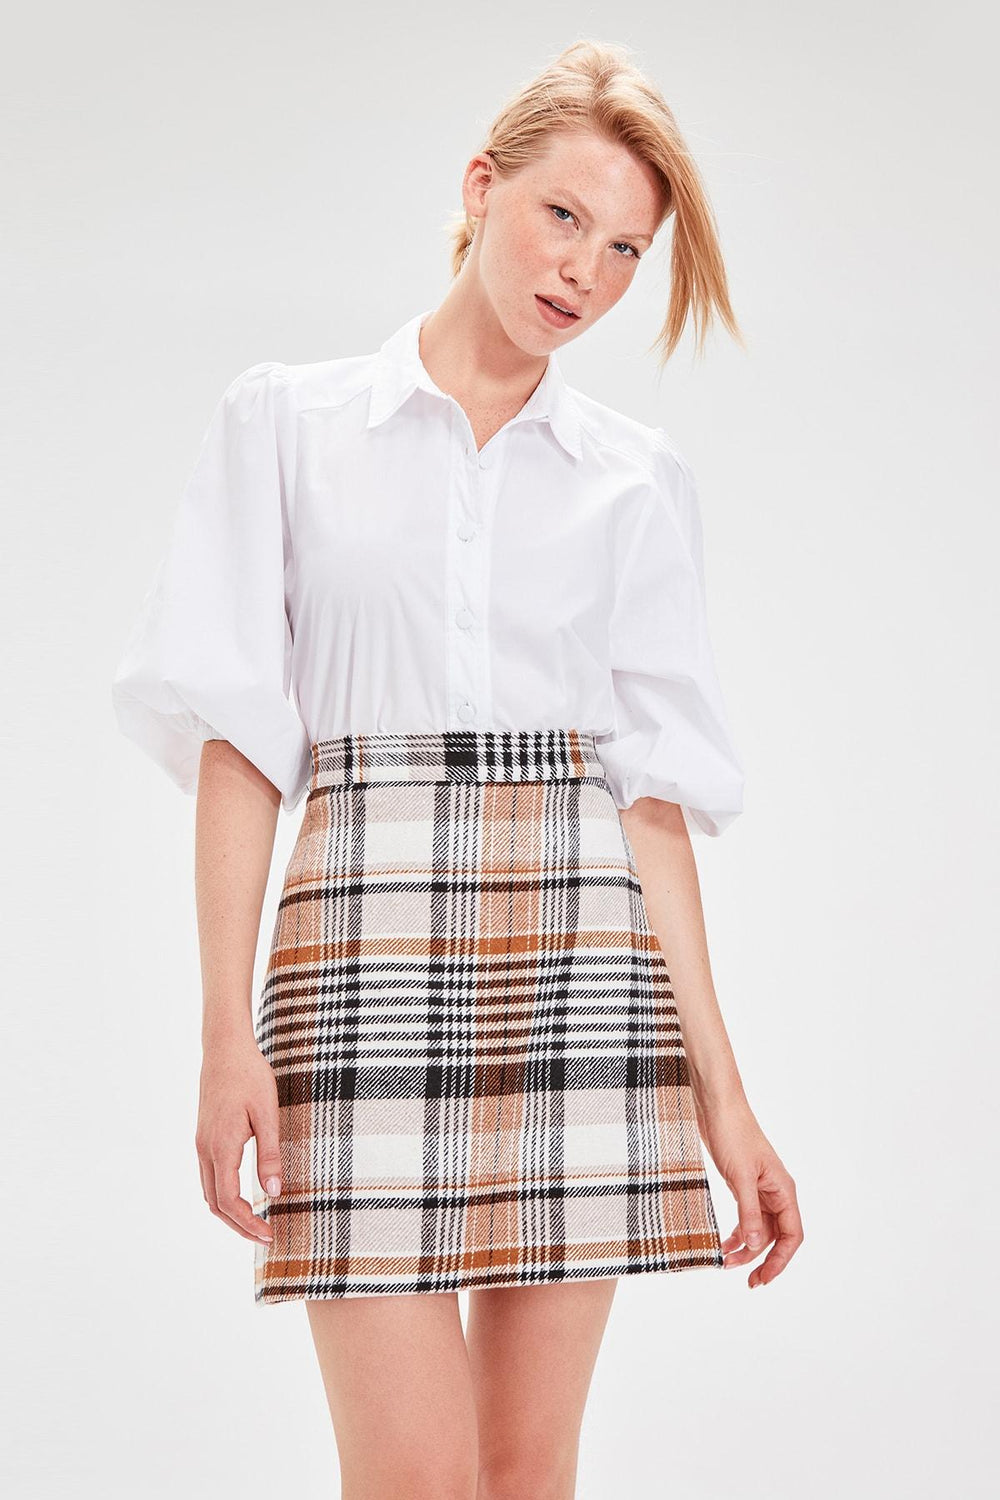 Miss Zut Miss Zut Camel Plaid Skirt Miss Zut &CO